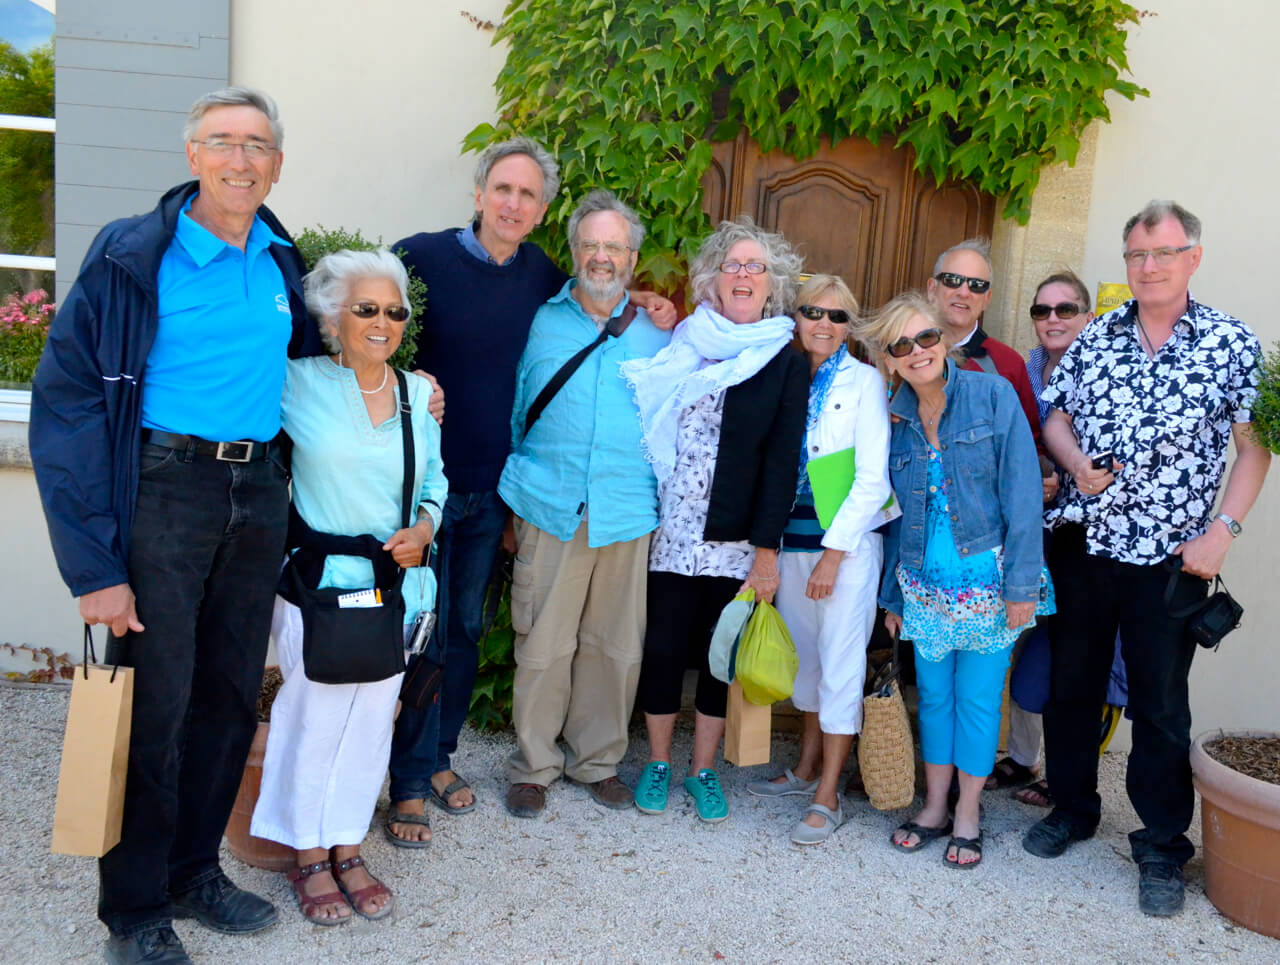 Chateau Beaucastel wine tour group